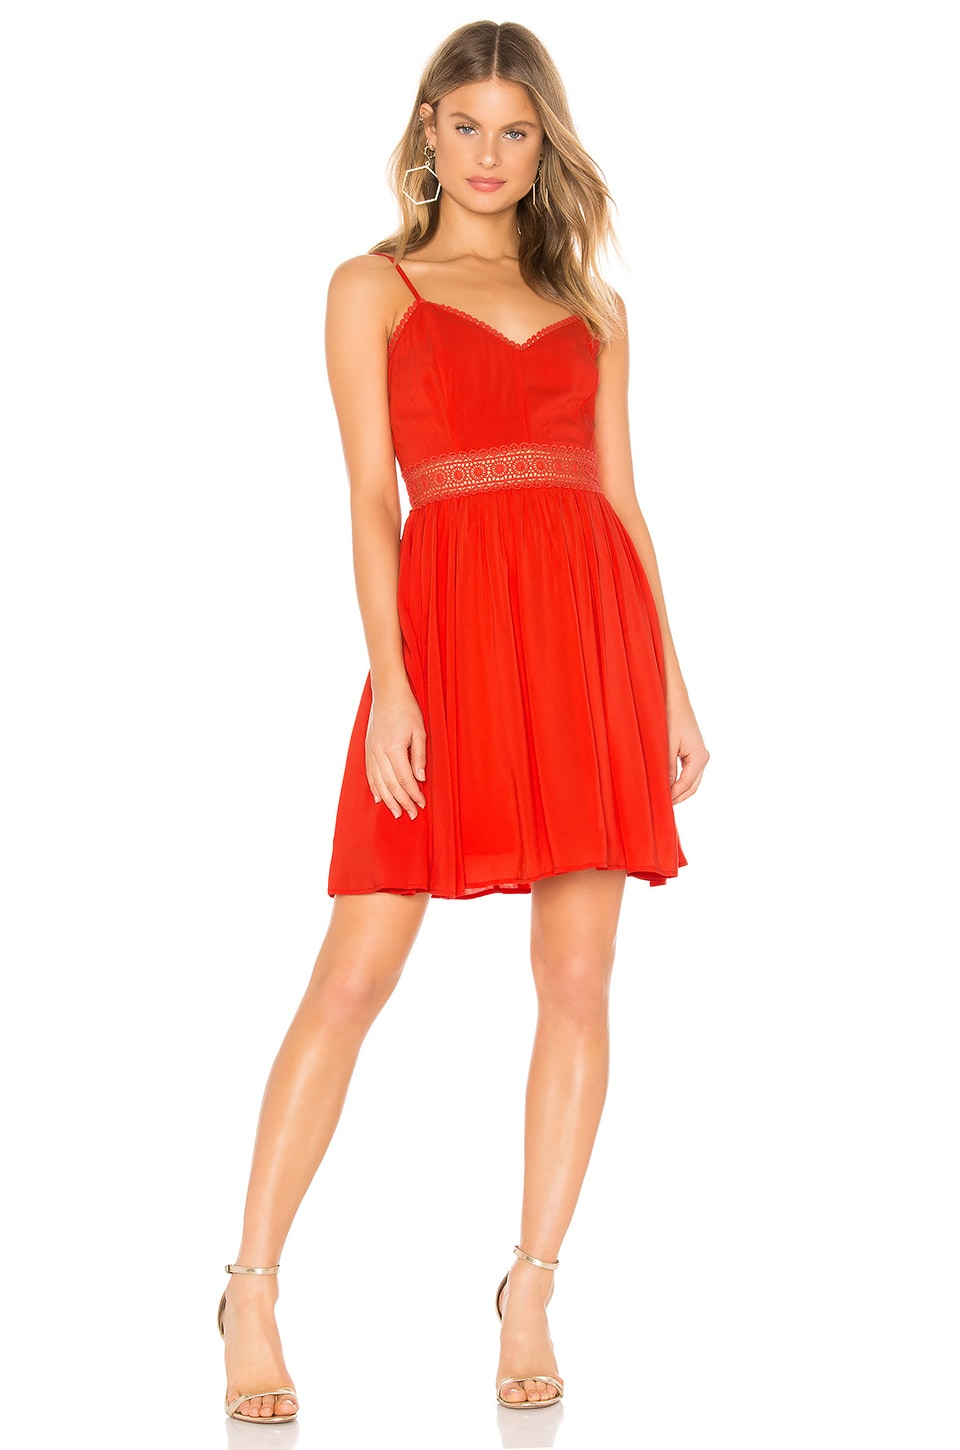 BB Dakota JACK by BB Dakota Bells & Whistles Dress in Poppy Red